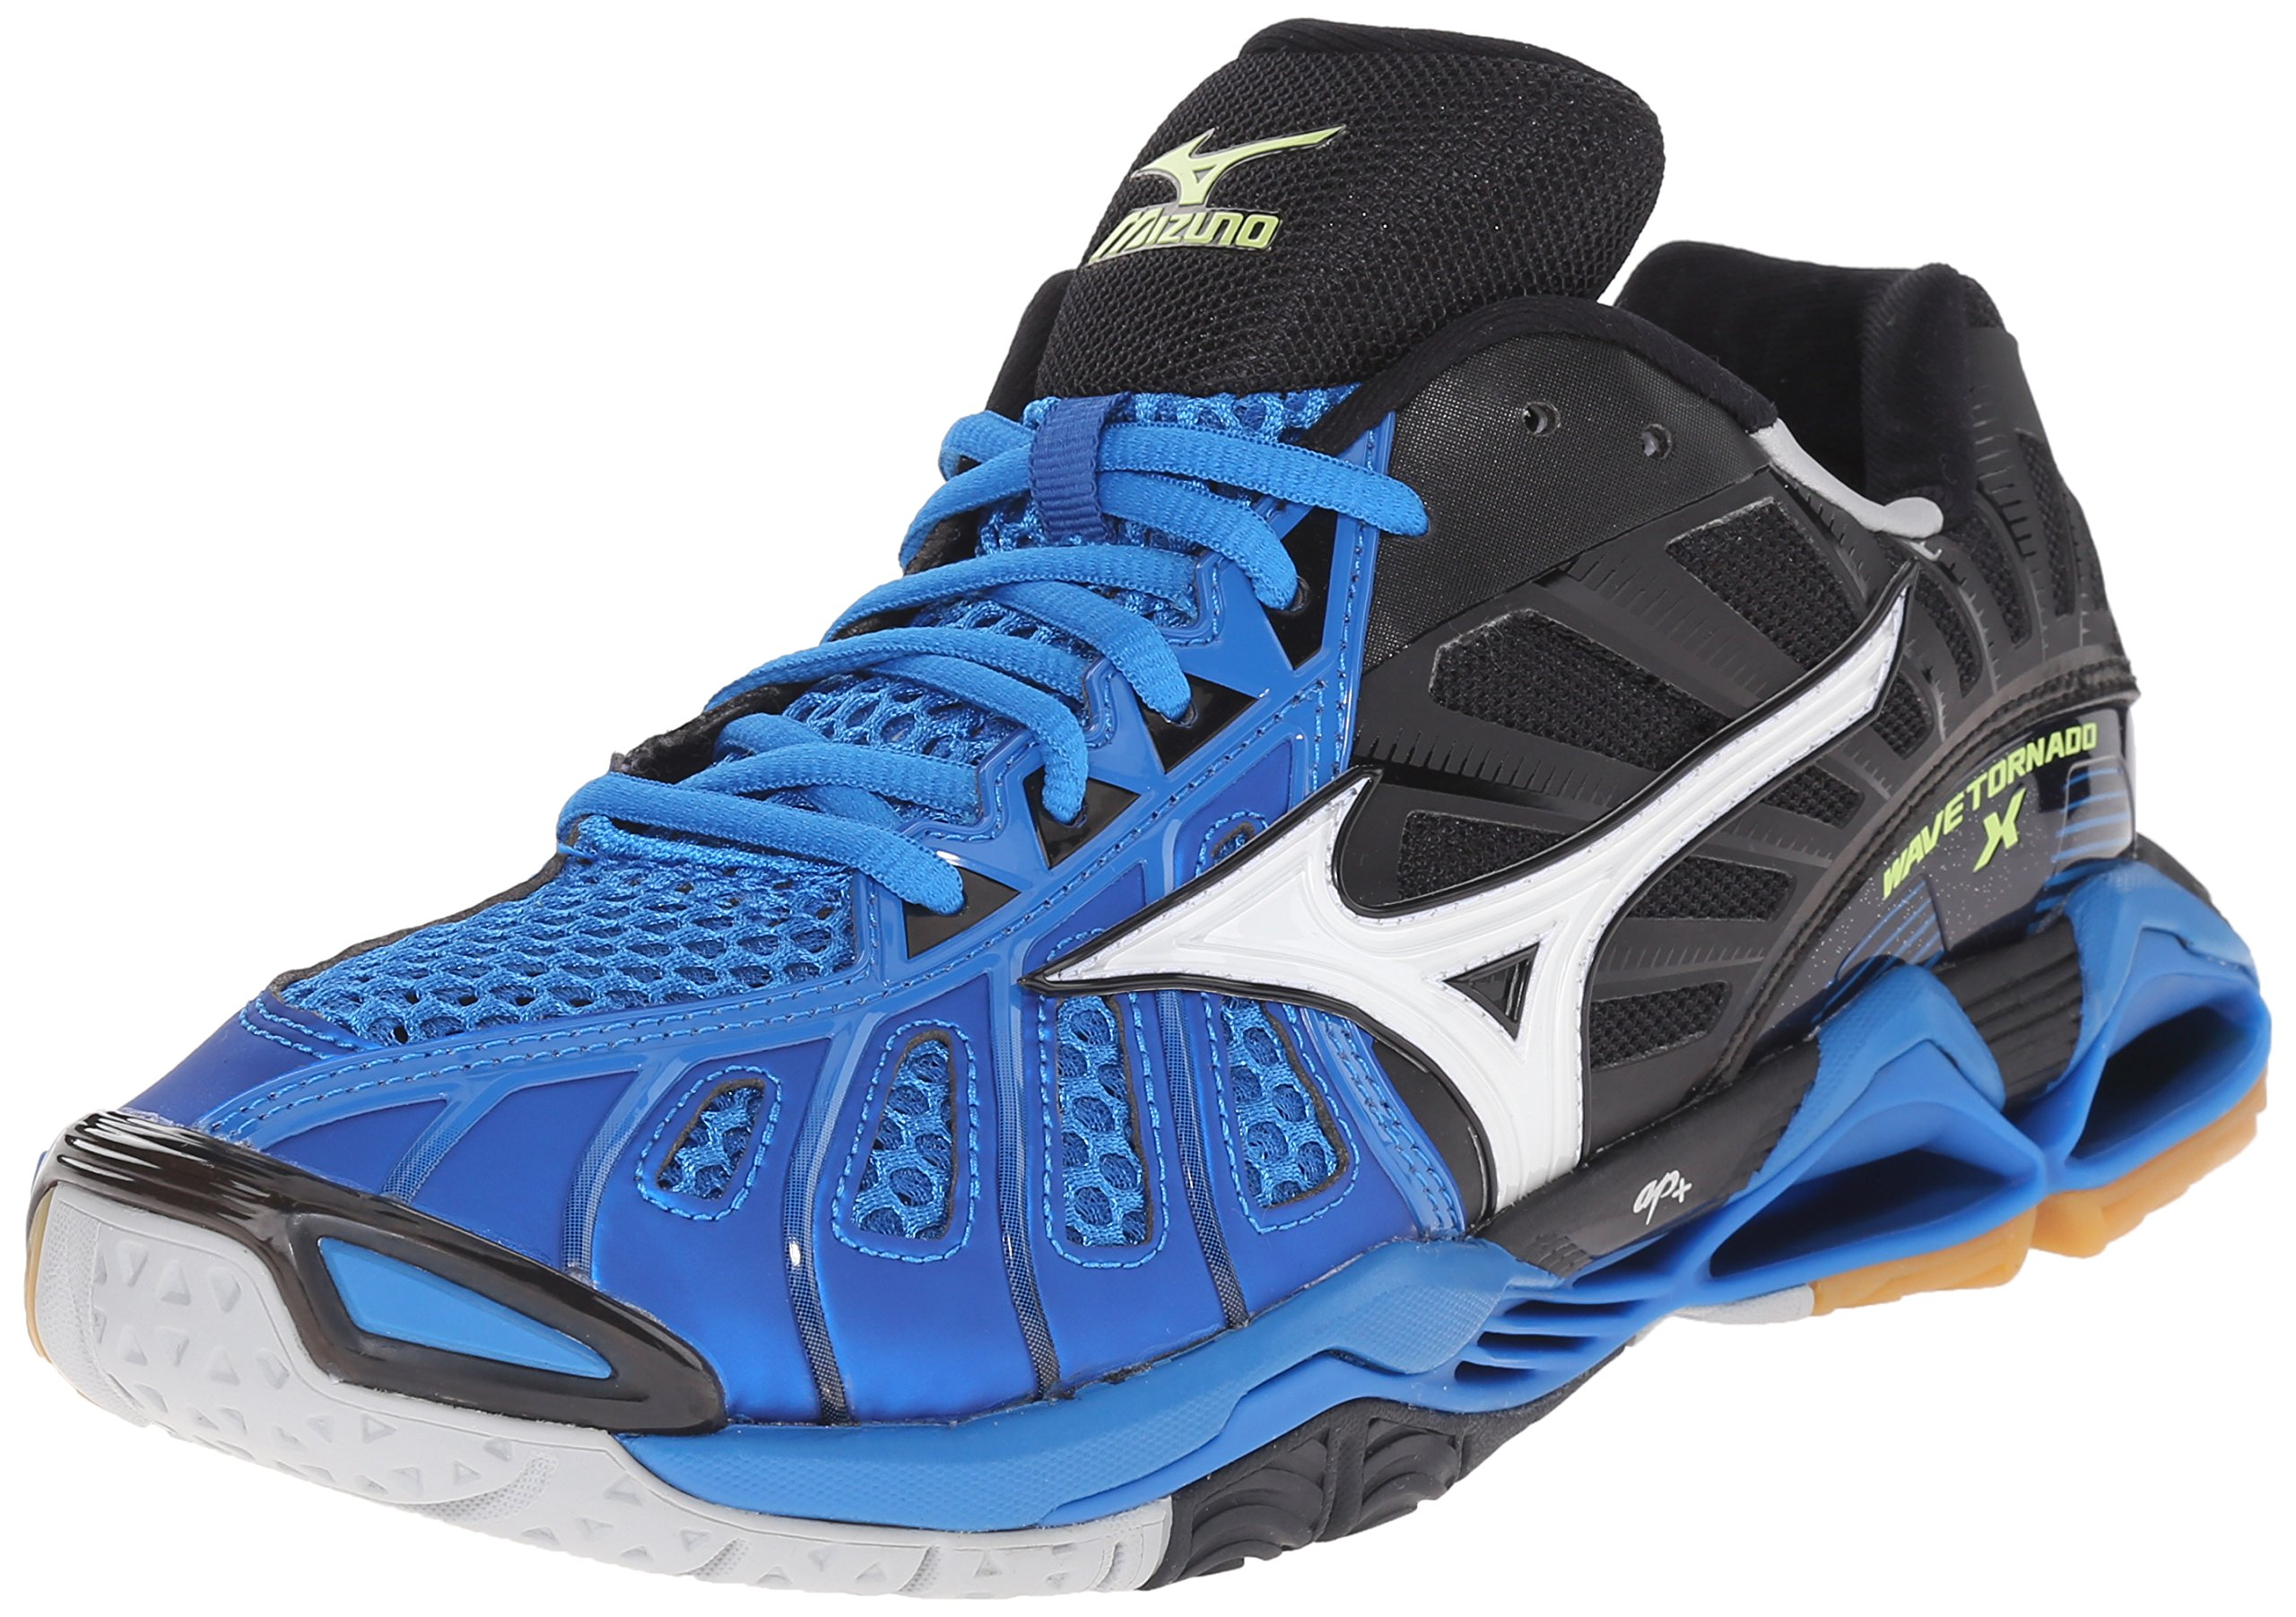 Mizuno Men's Wave Tornado x Volleyball Shoe, Directoire Blue/Black, 16 D US by Mizuno